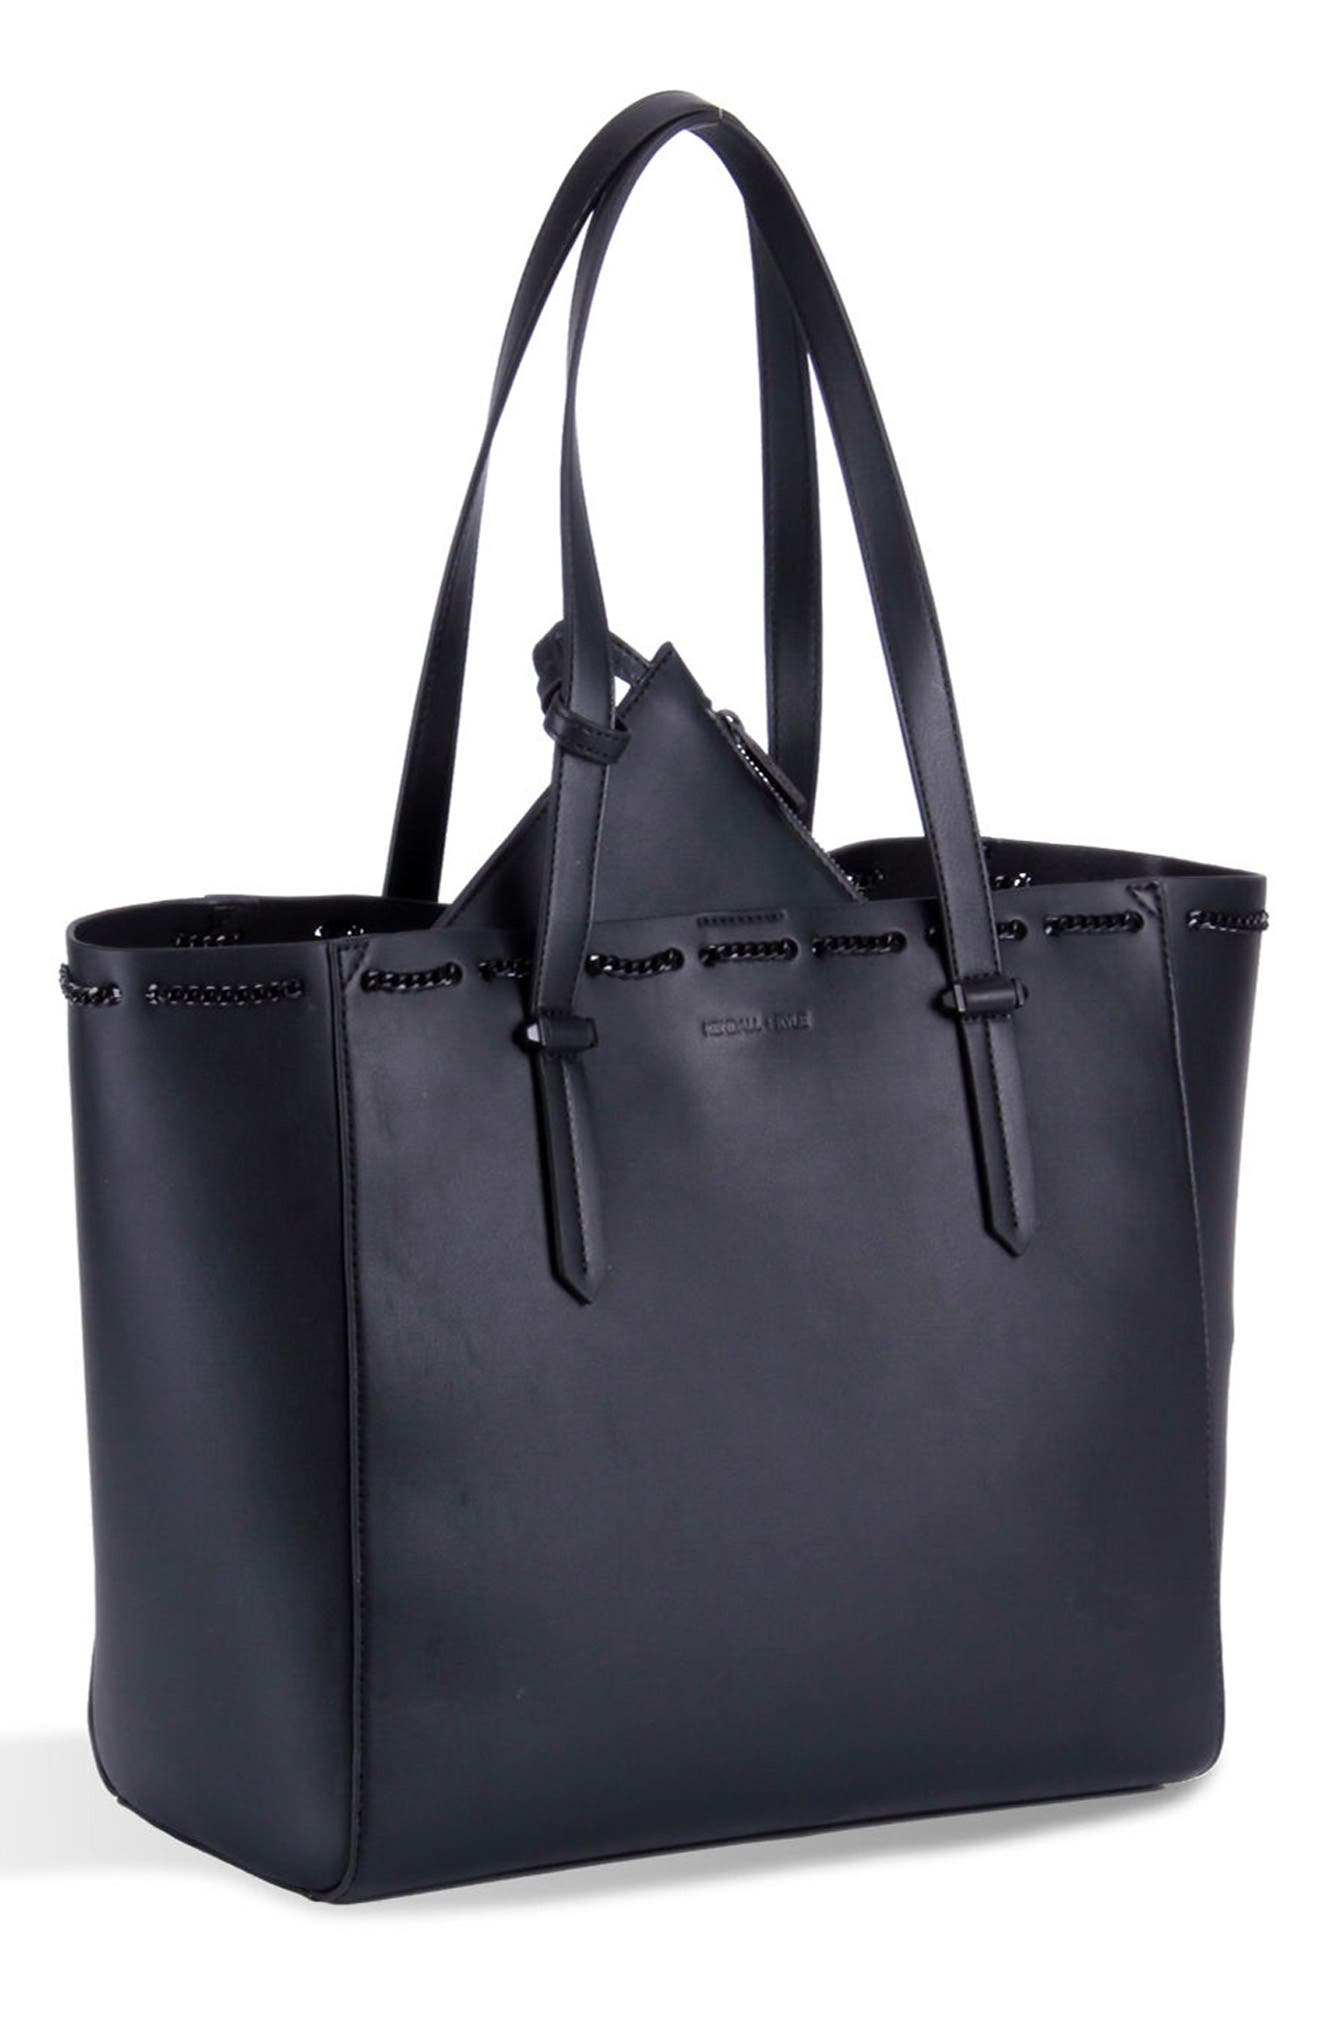 KENDALL + KYLIE Izzy Chain Faux Leather Tote